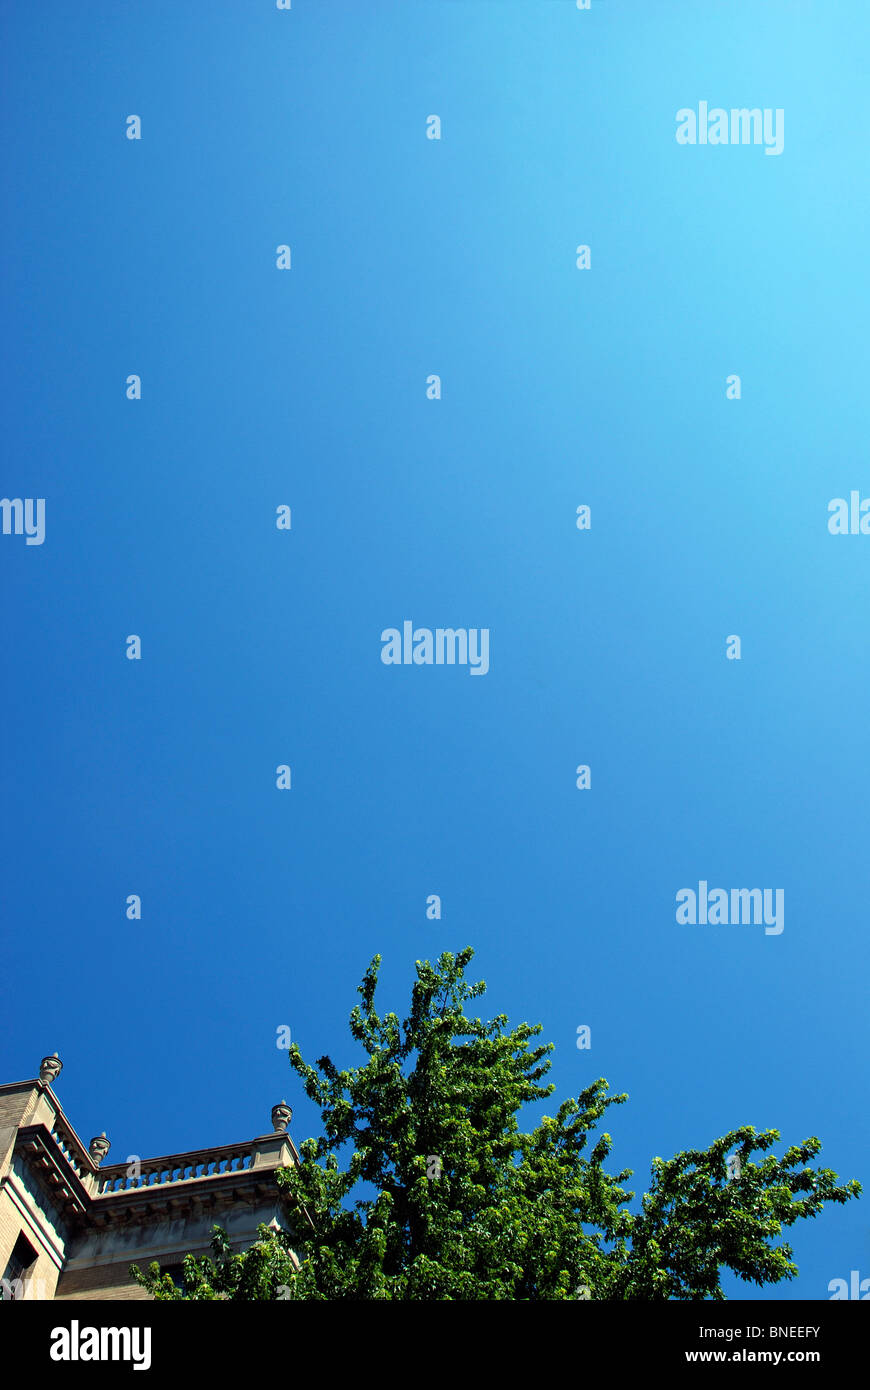 Old building and tree against blue sky - Stock Image